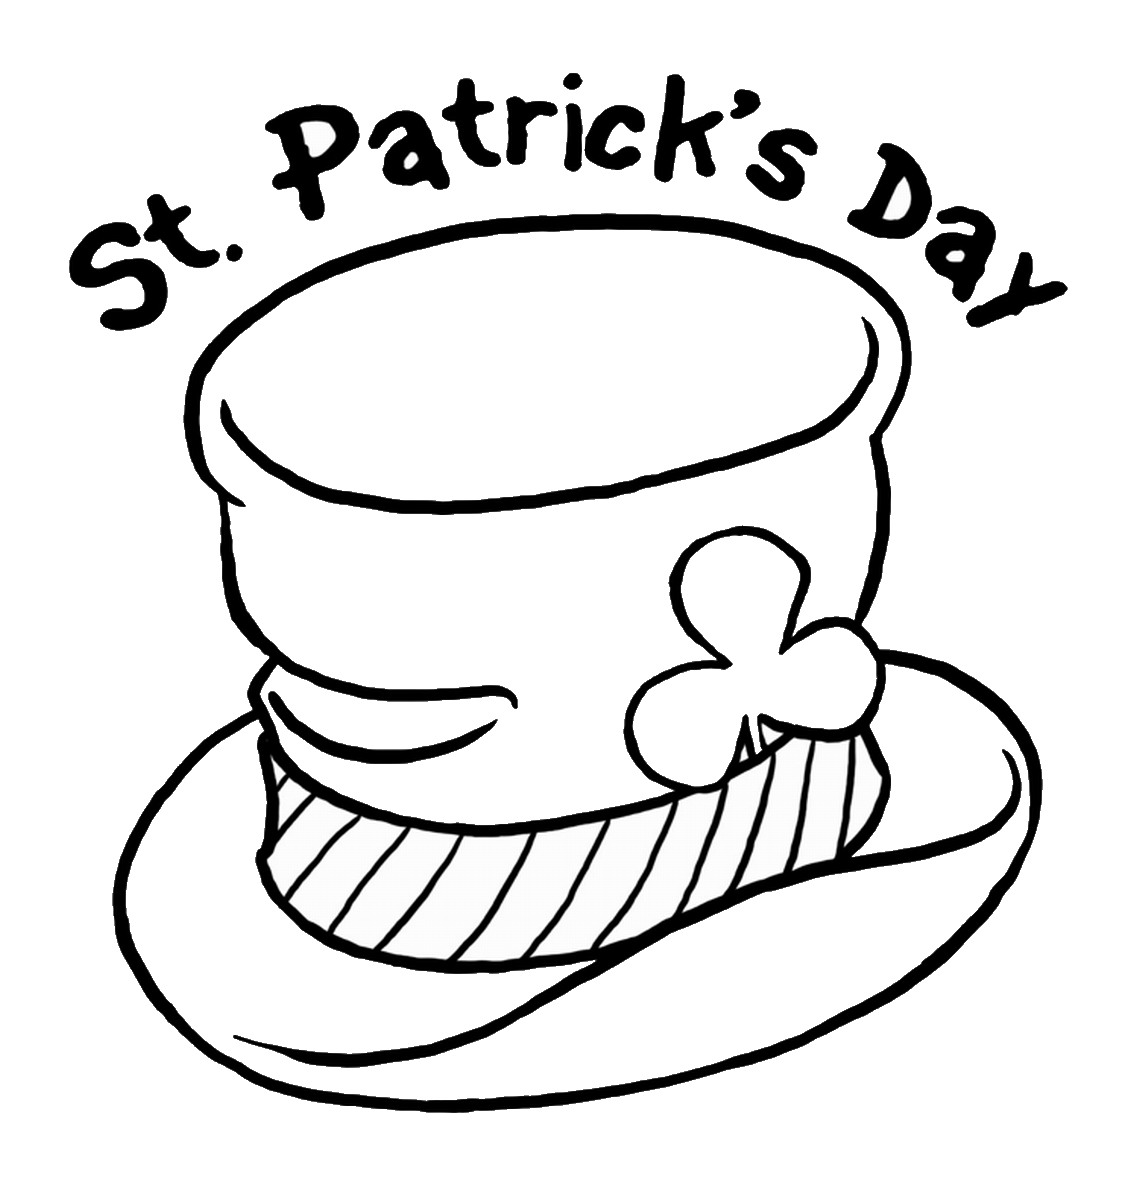 St Patrick 39 s Day Coloring Pages